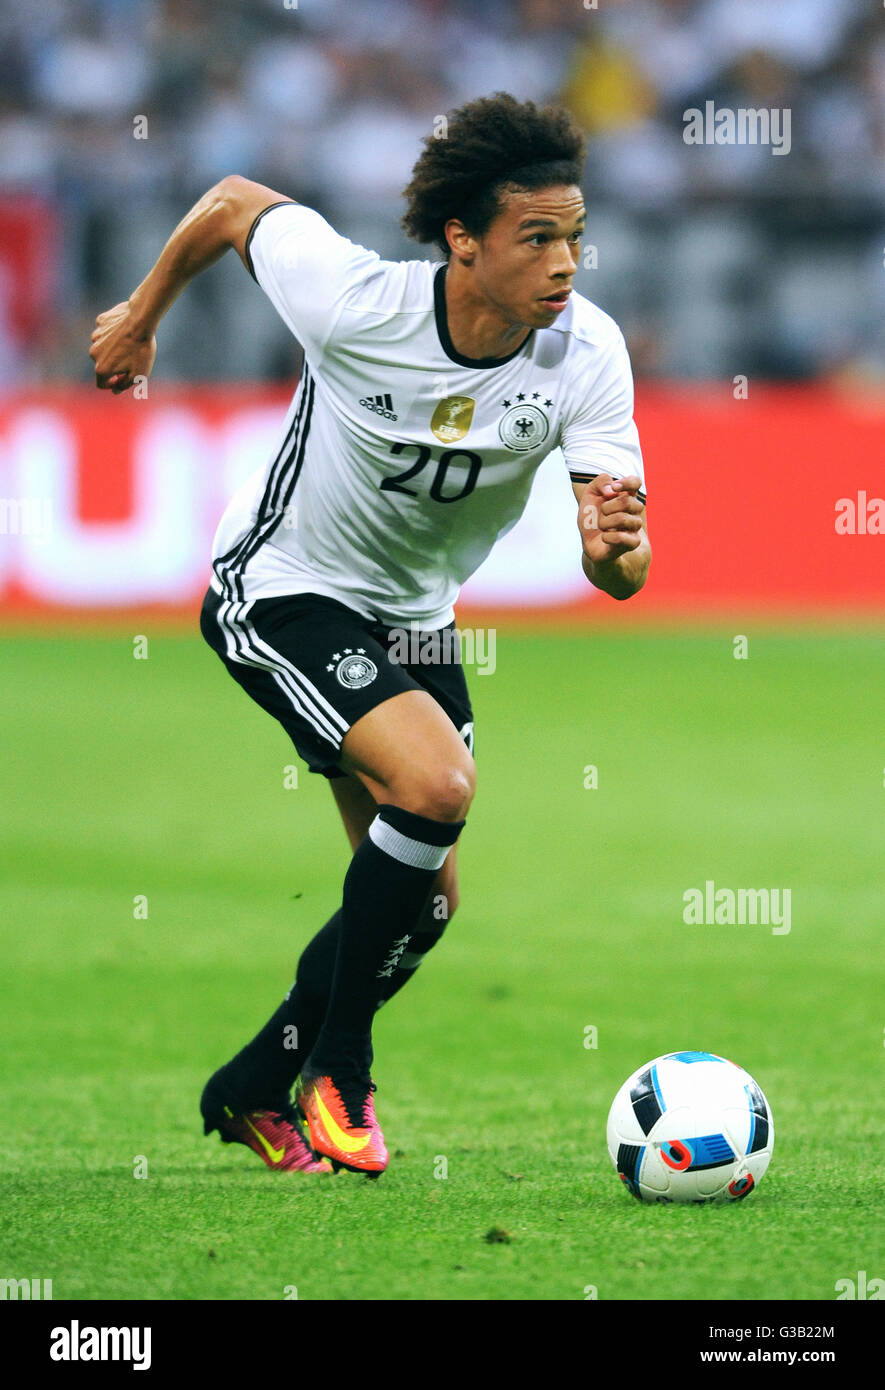 Leroy Sane during a friendly match with the german national team. Stock Photo